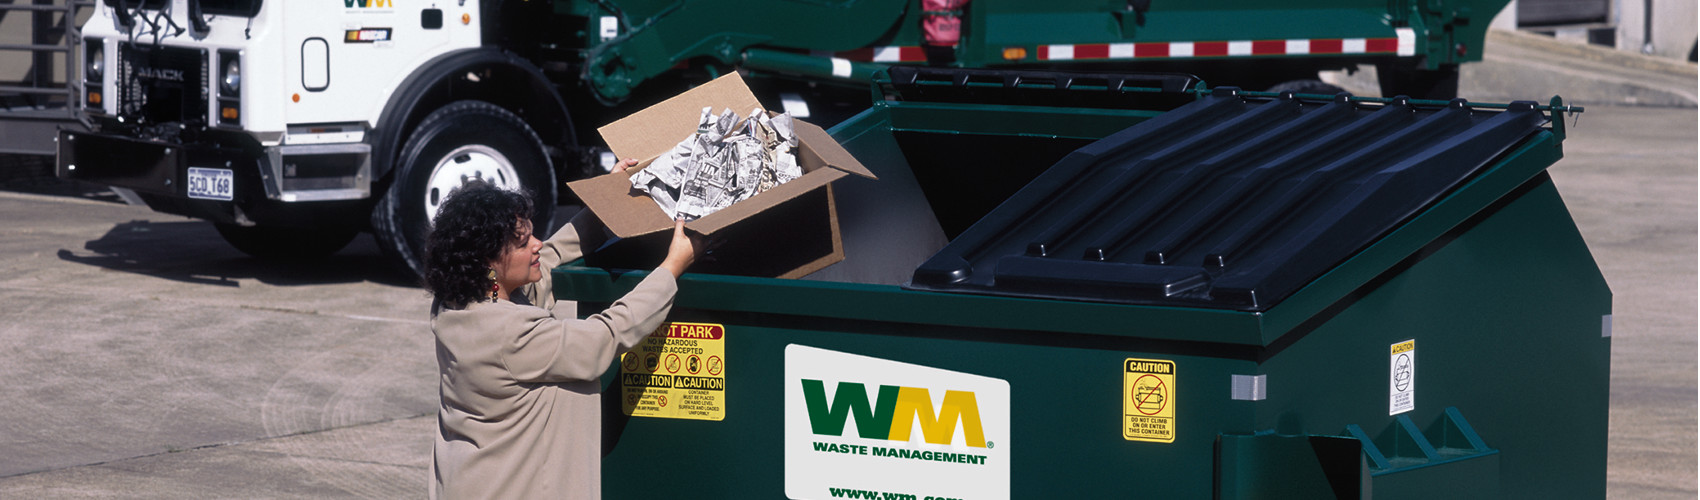 Sustainable Business Solutions | WMSolutions com